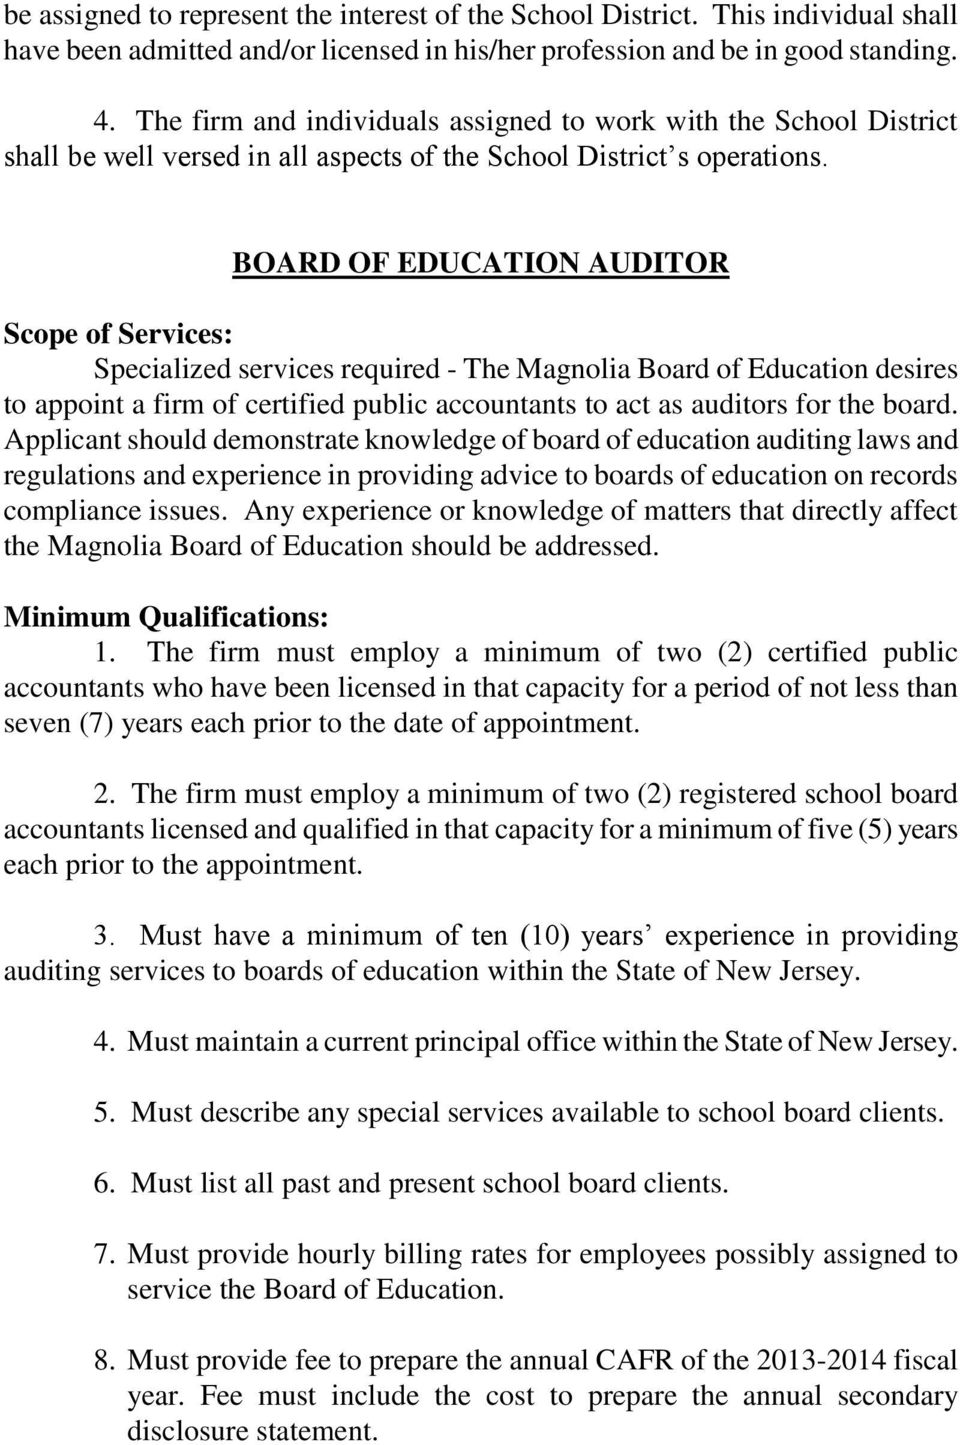 BOARD OF EDUCATION AUDITOR Scope of Services: Specialized services required - The Magnolia Board of Education desires to appoint a firm of certified public accountants to act as auditors for the